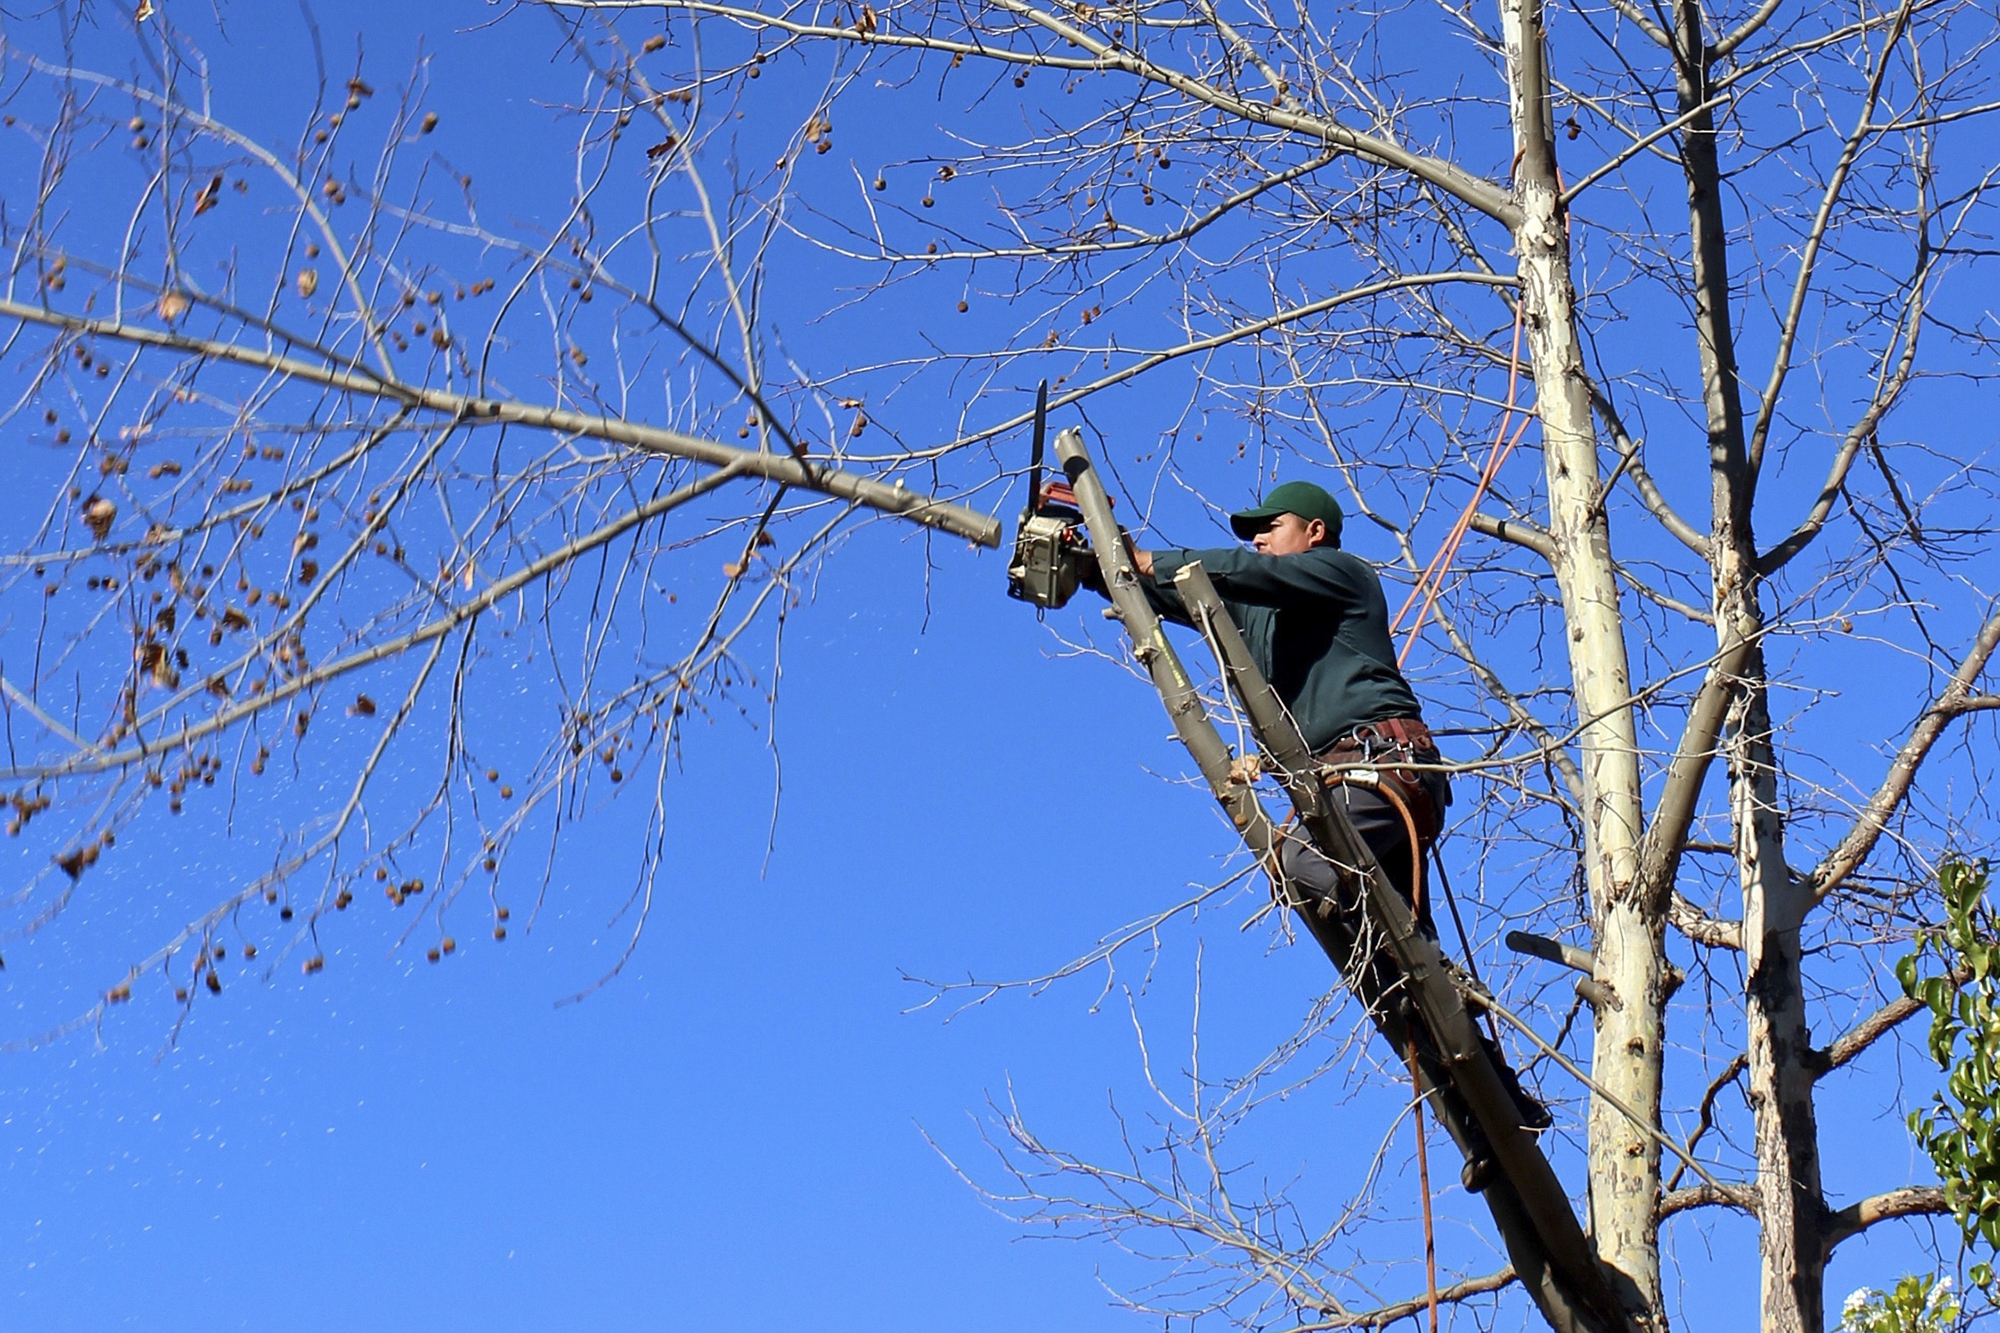 A man trims tree branches with a saw.